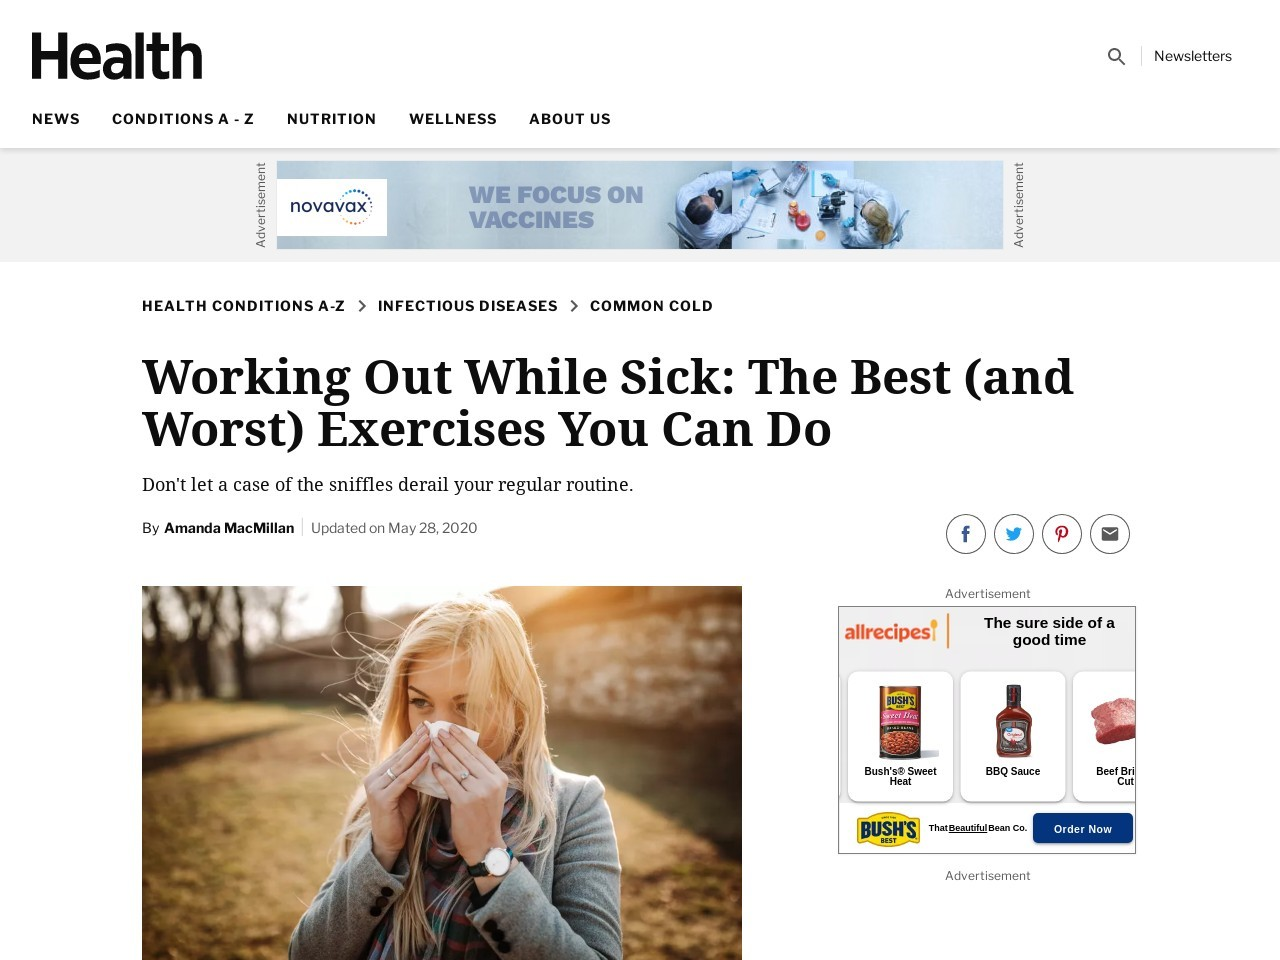 Is It OK to Work Out When You're Sick? – Health News and …